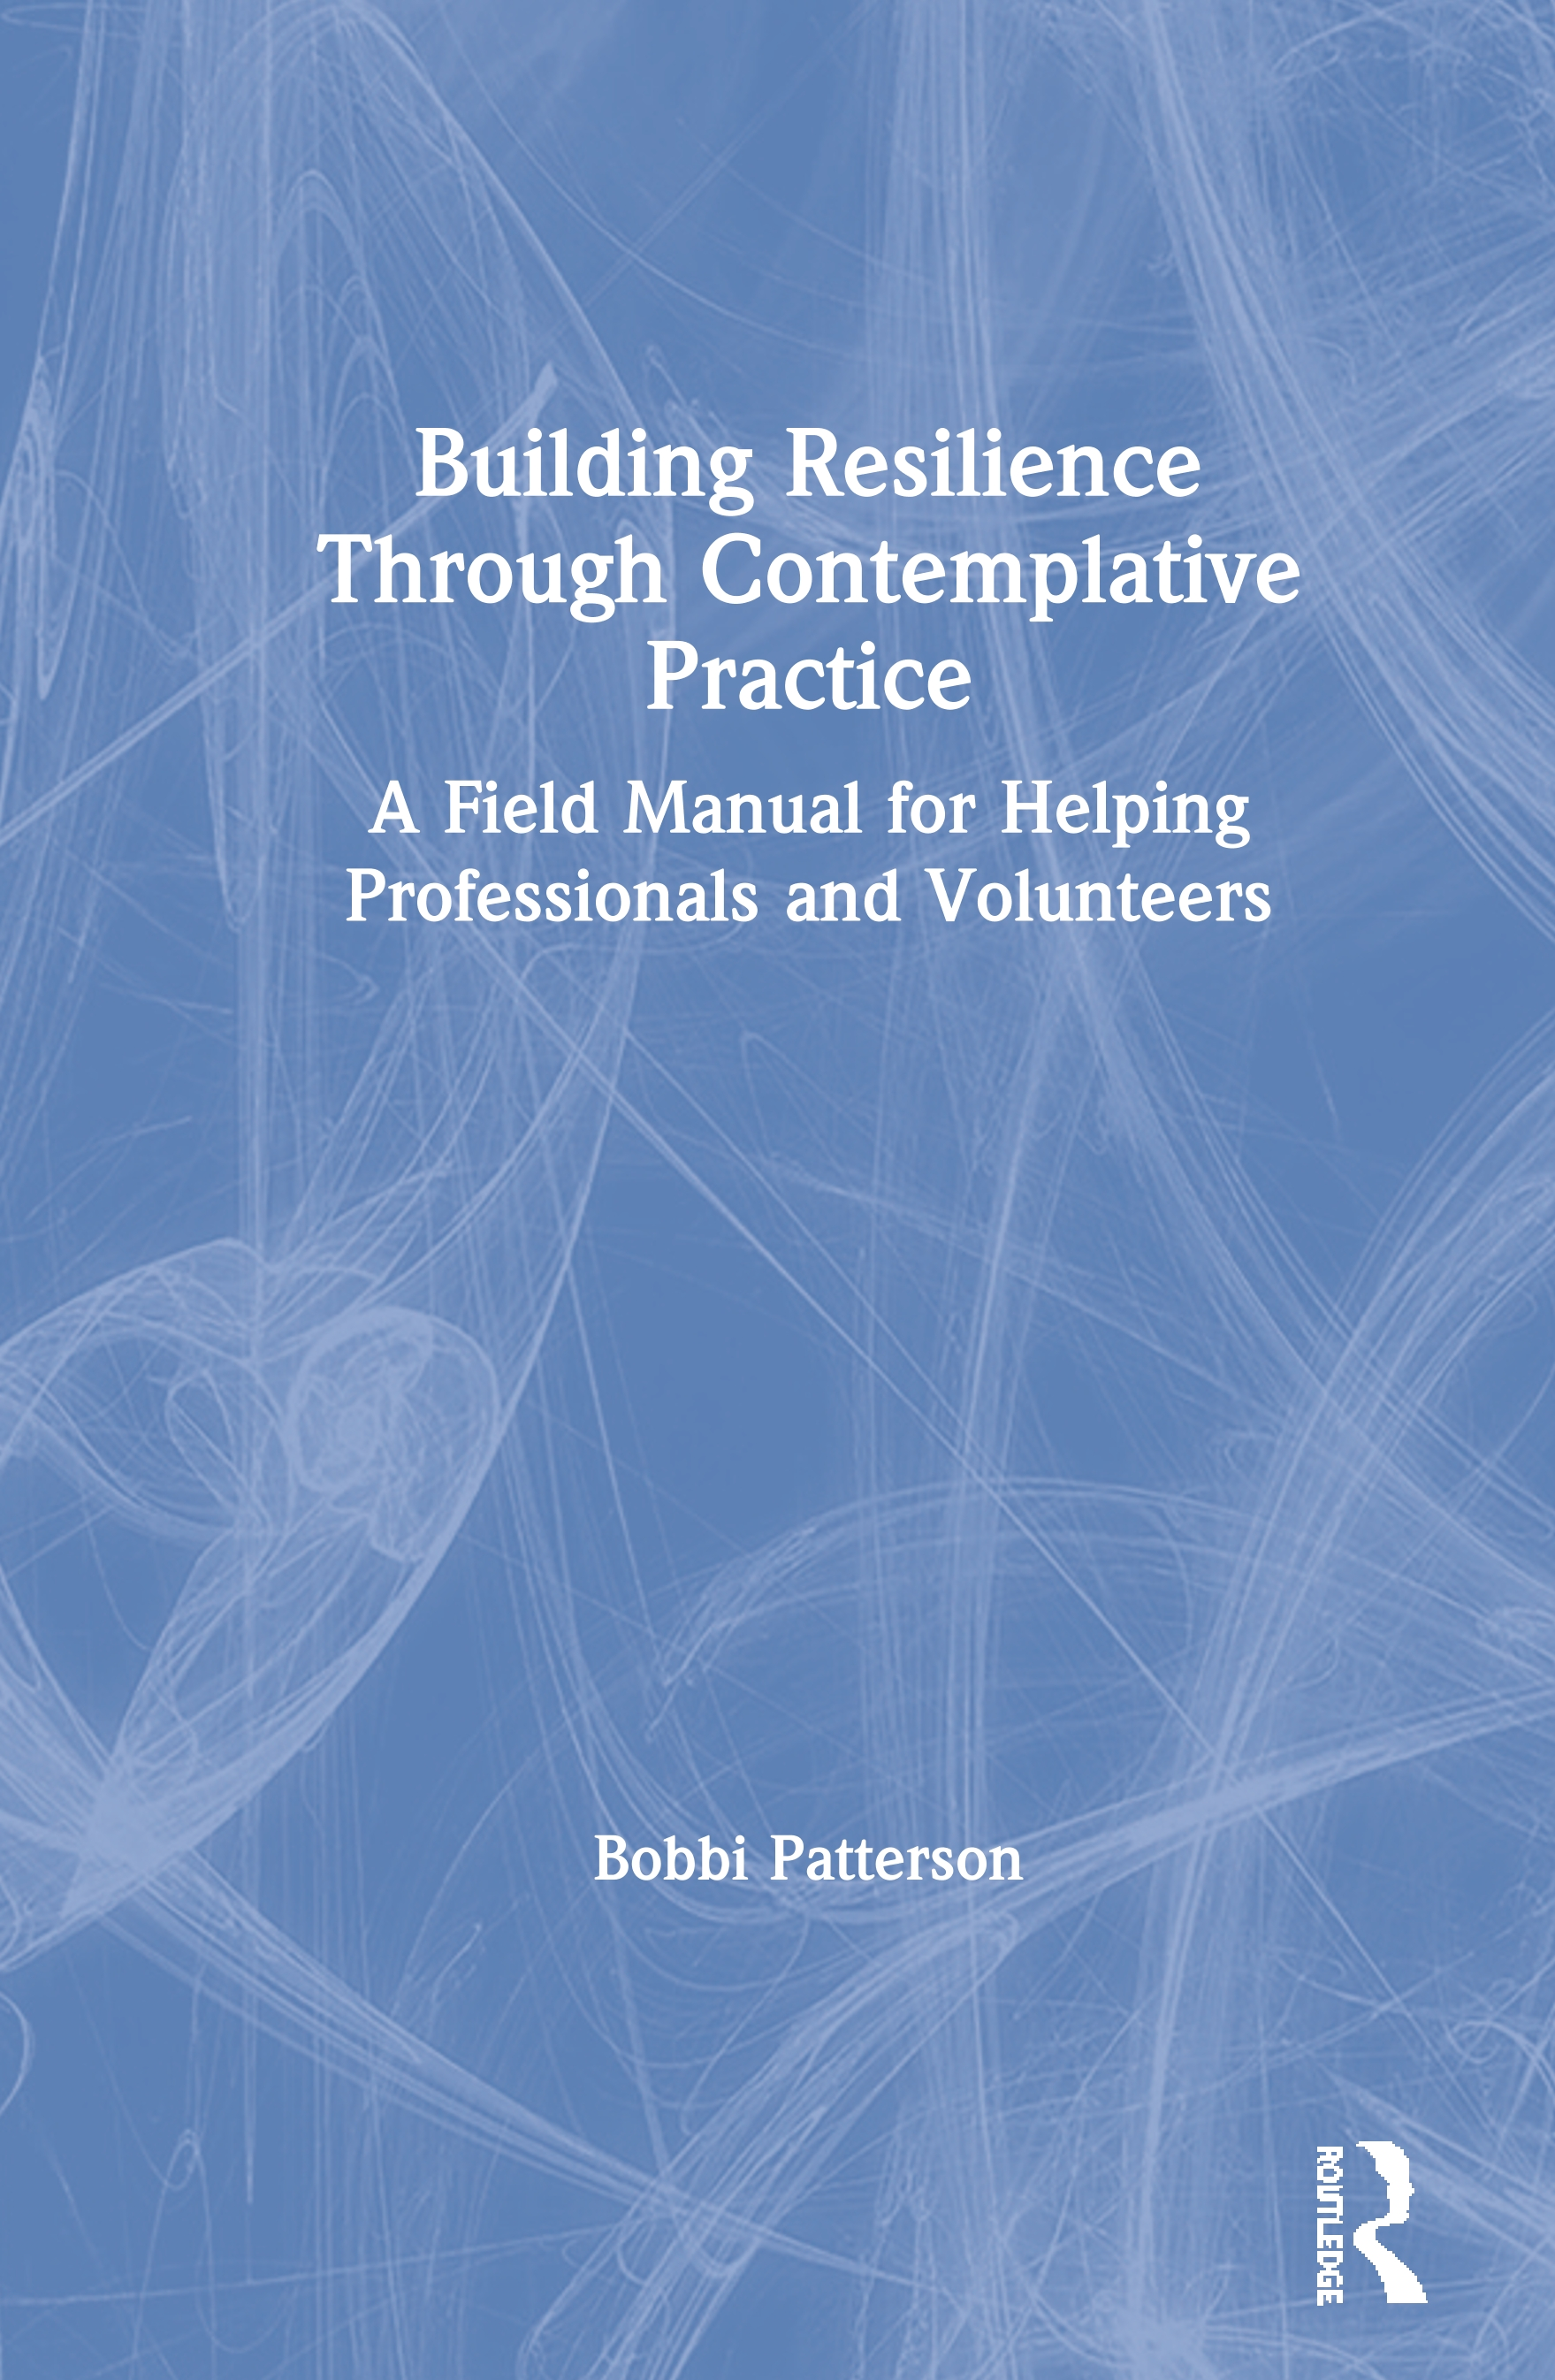 Building Resilience Through Contemplative Practice: A Field Manual for Helping Professionals and Volunteers book cover